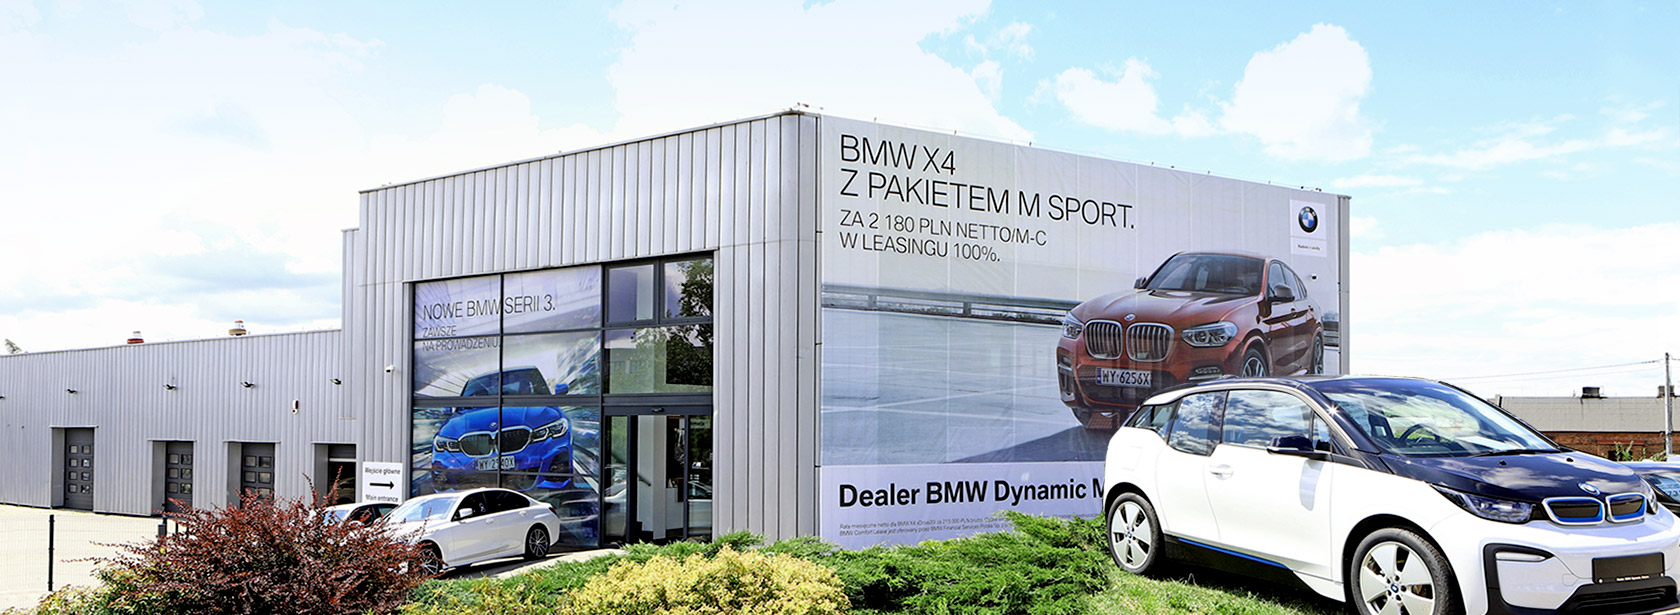 Salon Dealer BMW Dynamic Motors Płock.